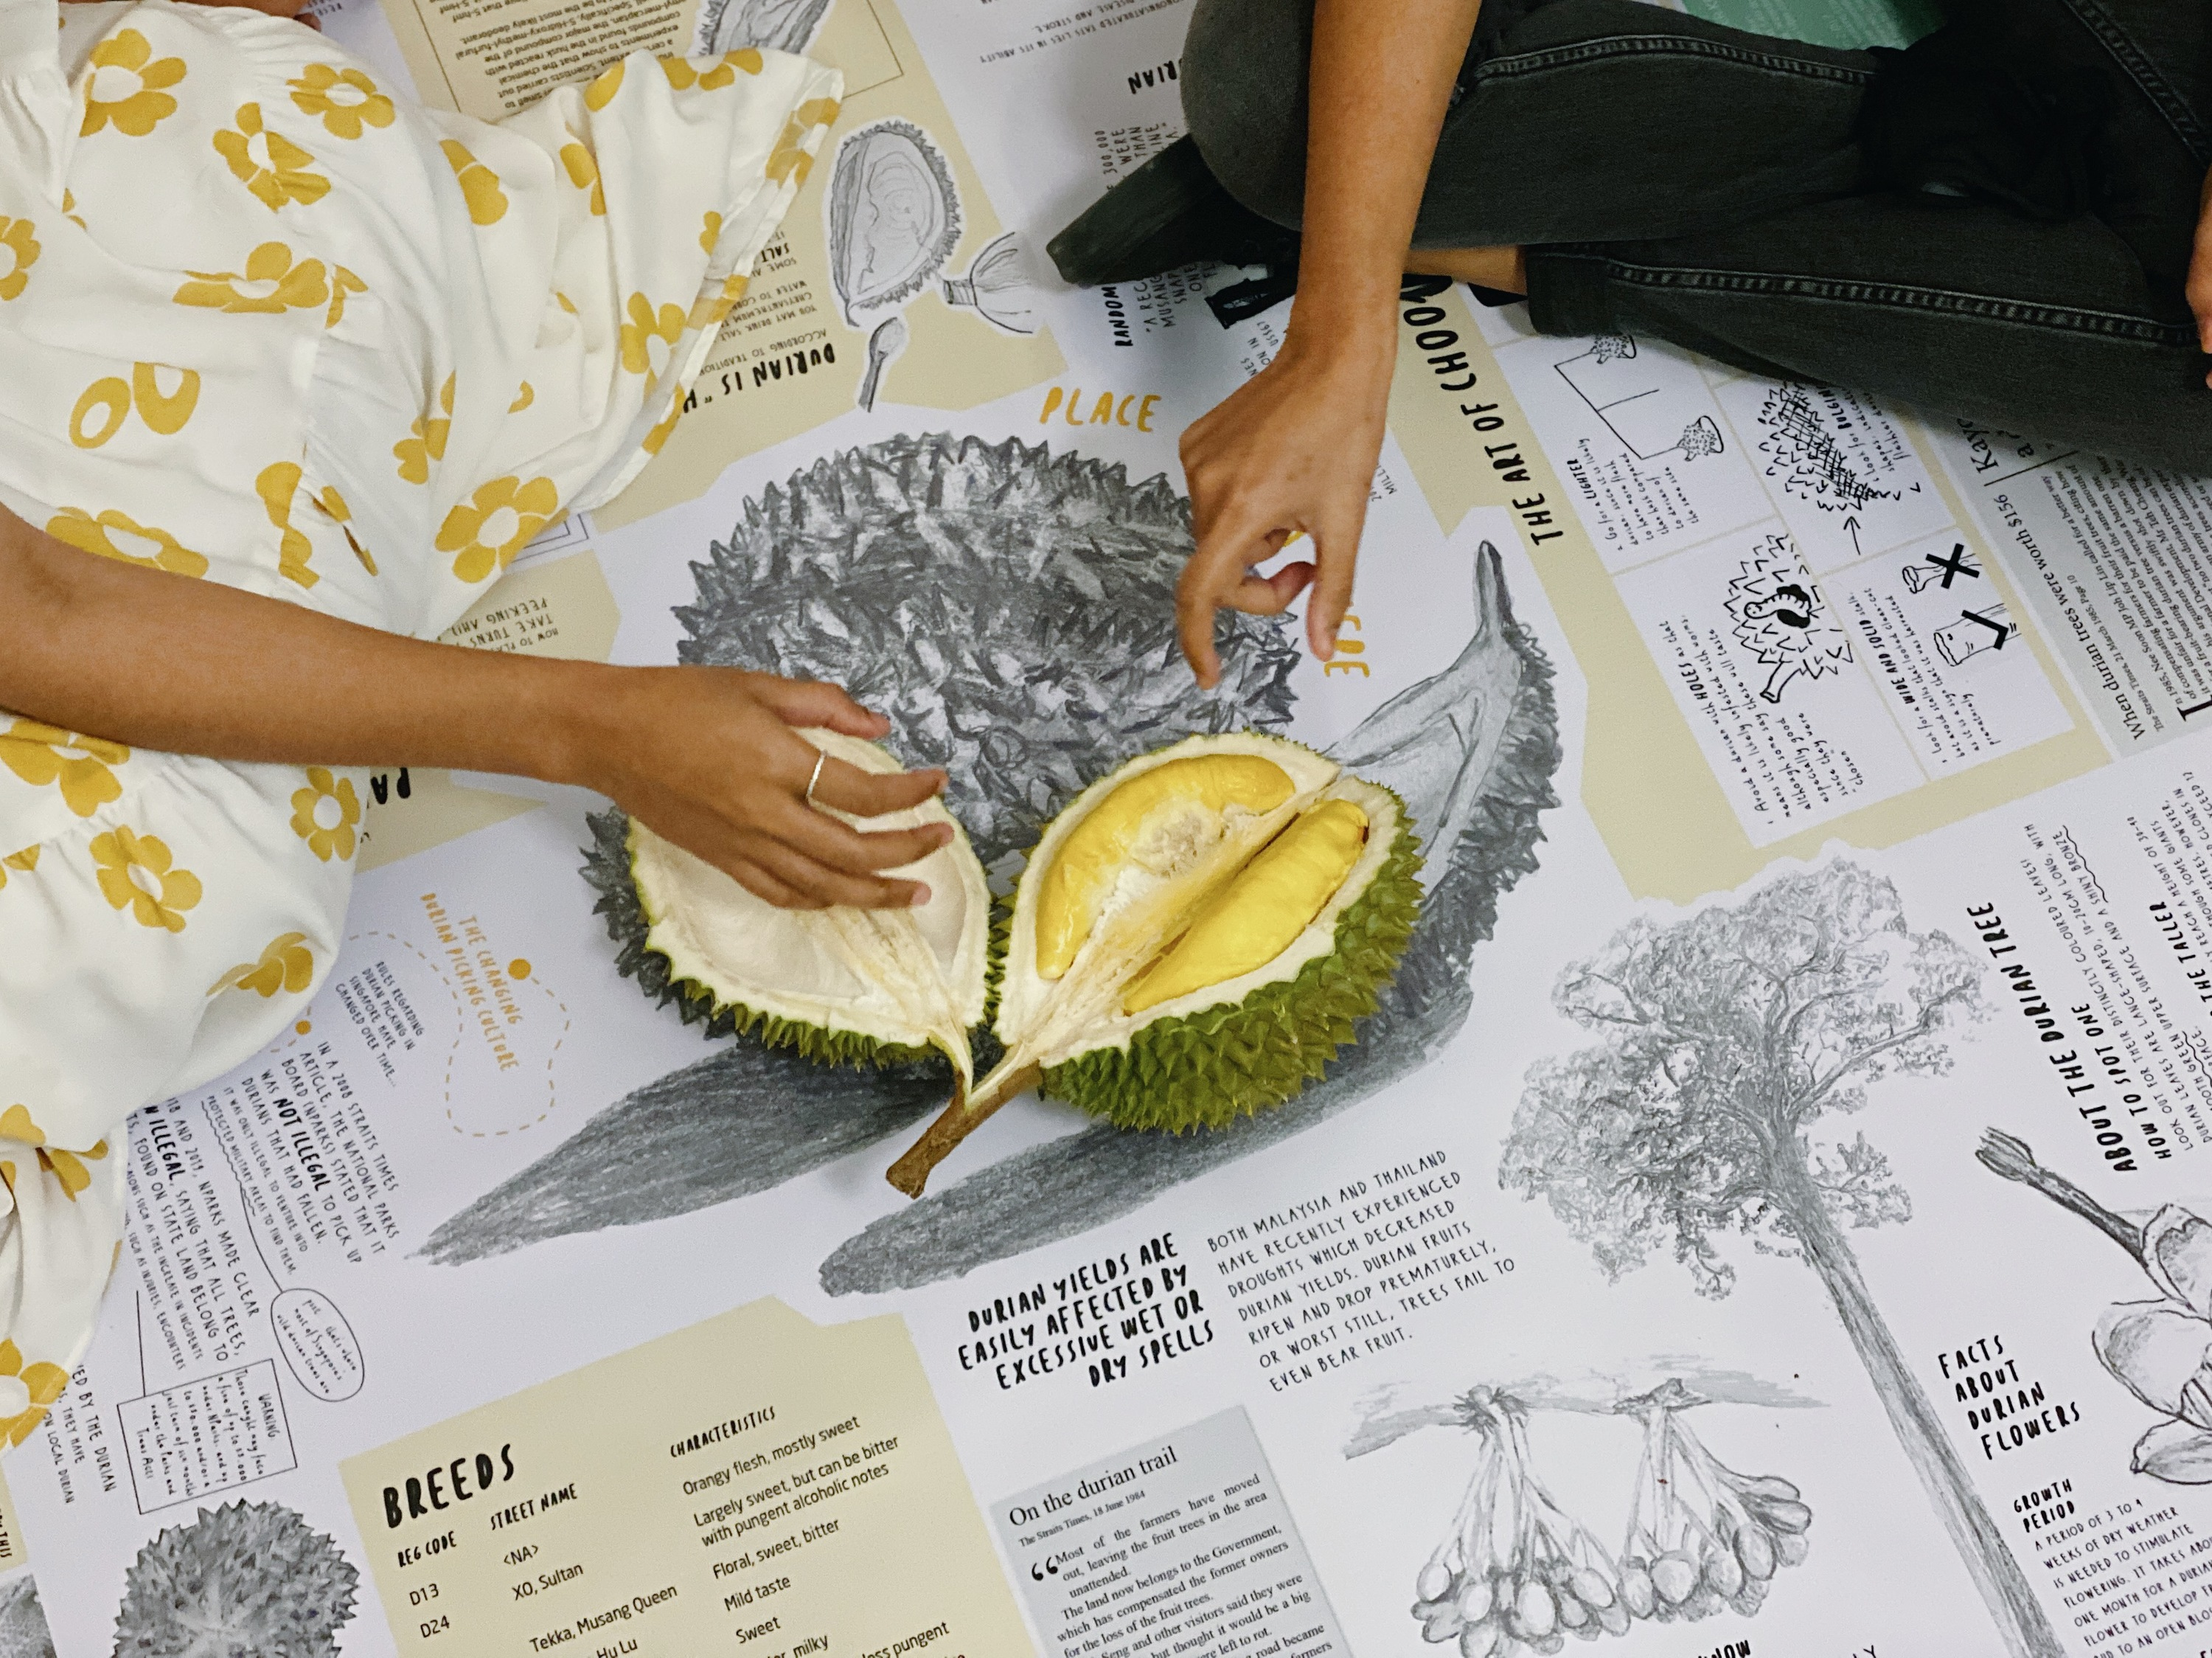 Artist spotlight: an interactive picnic that reconnects people with local durian culture